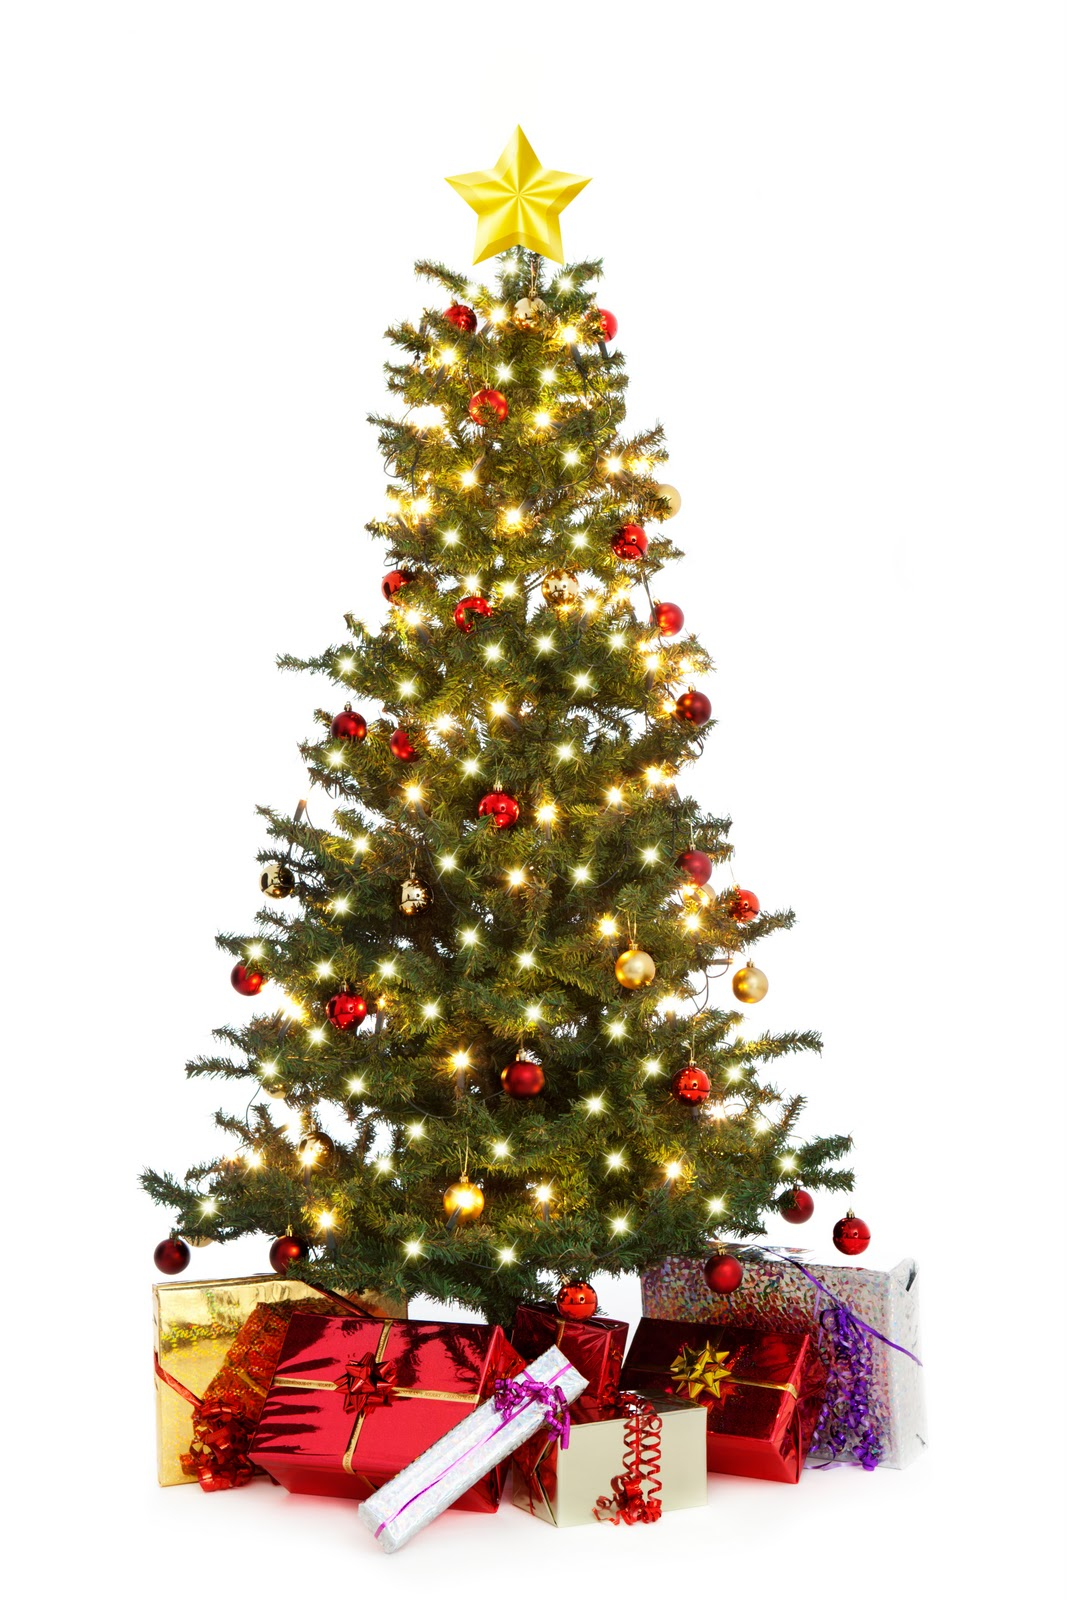 Cute Christmas Images Christmas Tree Image Royalty Free Christmas